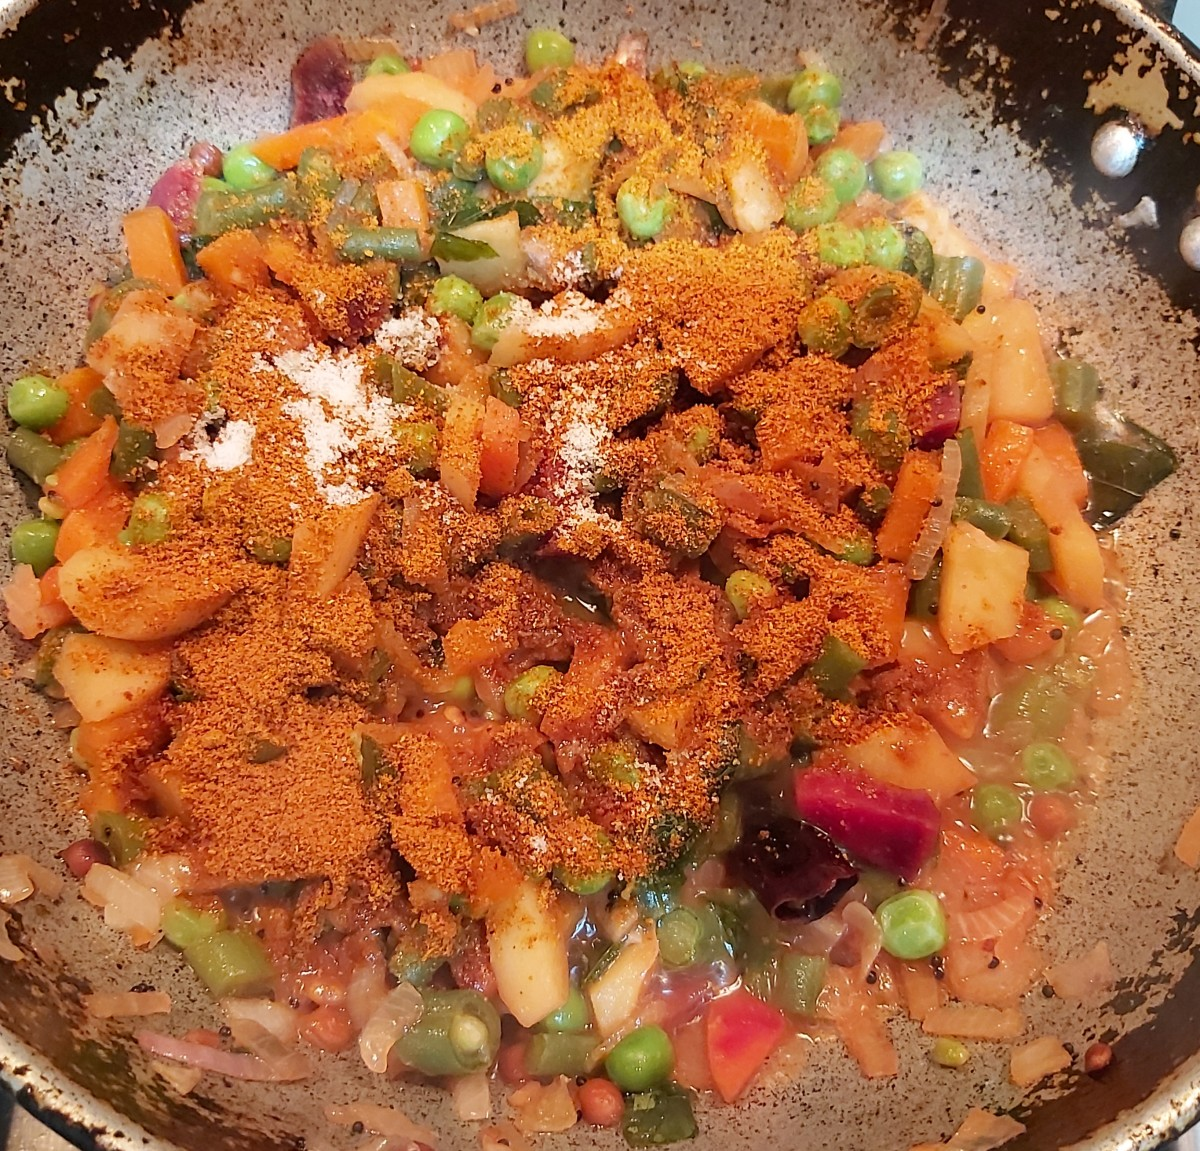 Add 2-3 teaspoons of sambar powder (I used store-bought sambar powder, you can use homemade, too) and salt to taste (vegetables are cooked with salt, so add salt sparingly).